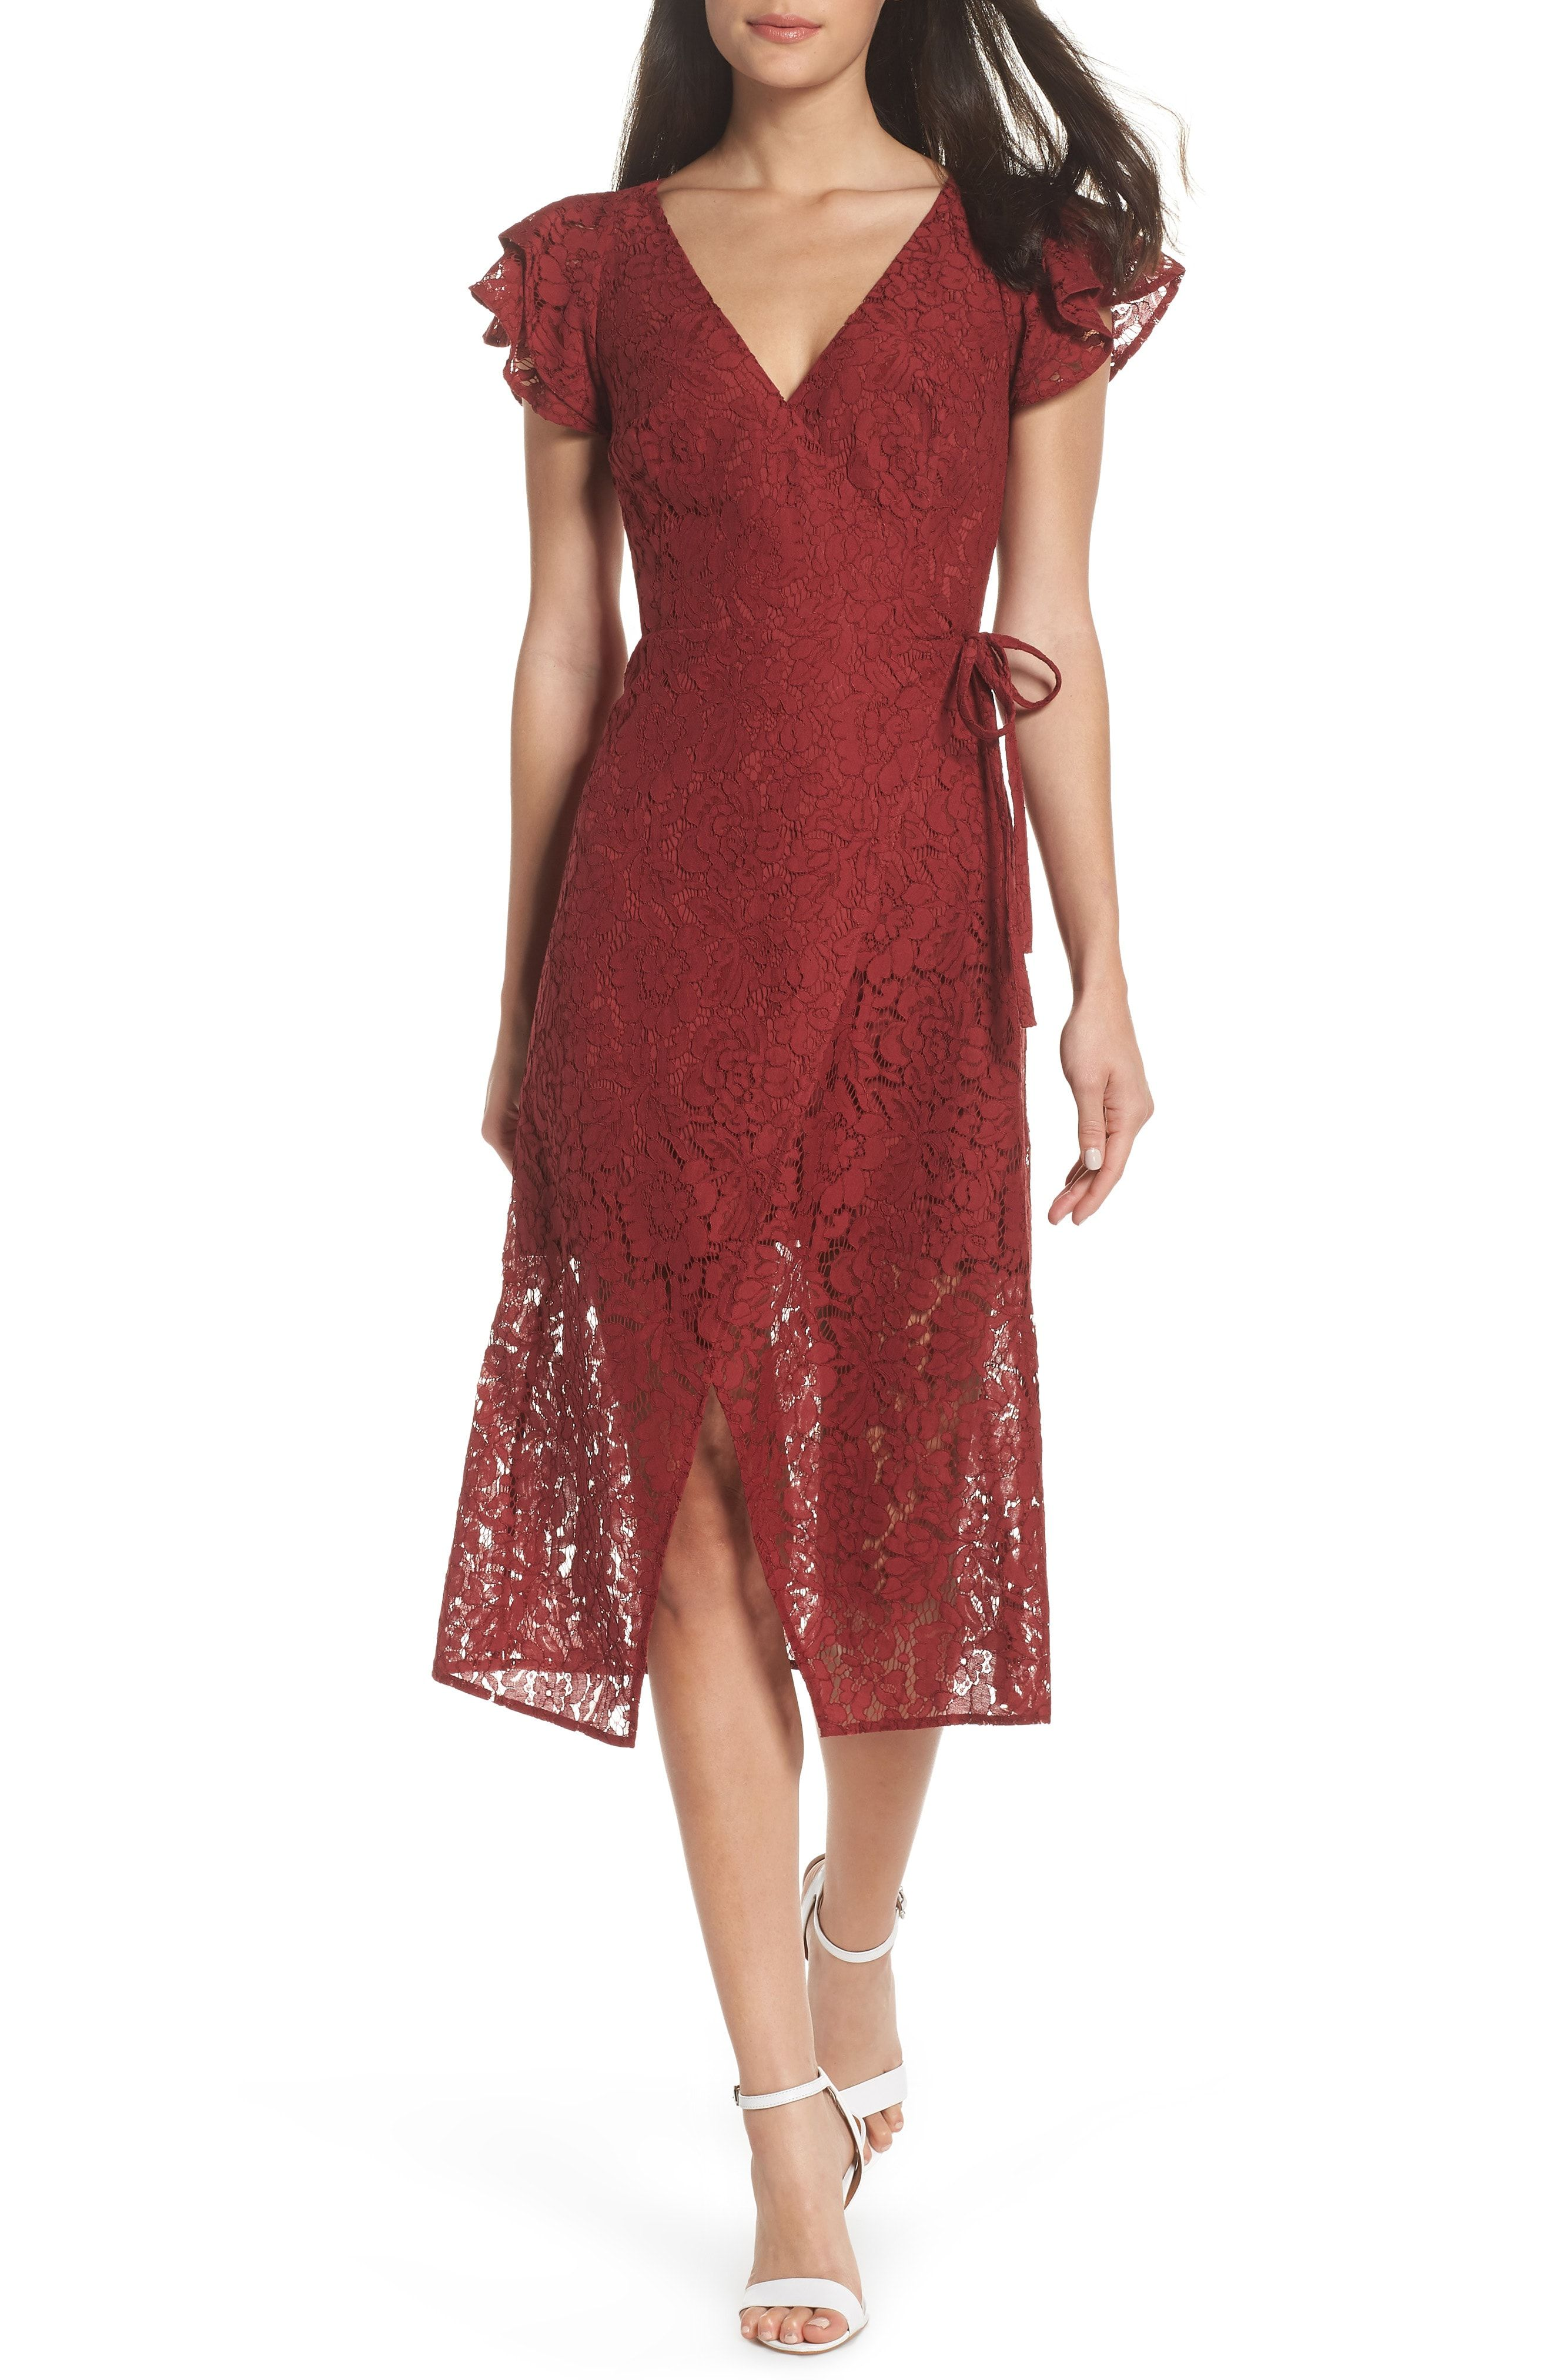 Nordstrom Wedding Guest Dresses.Fall Wedding Guest Dresses For Every Budget Affordable